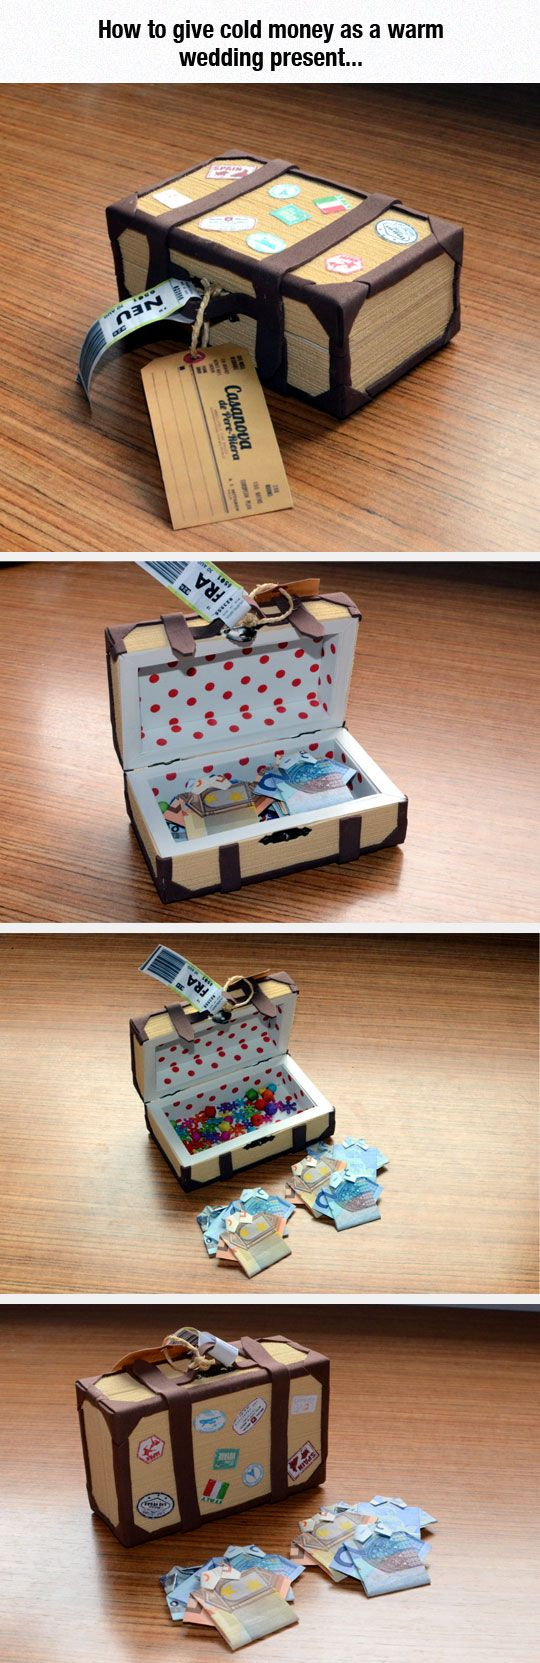 Cute suitcase memento box